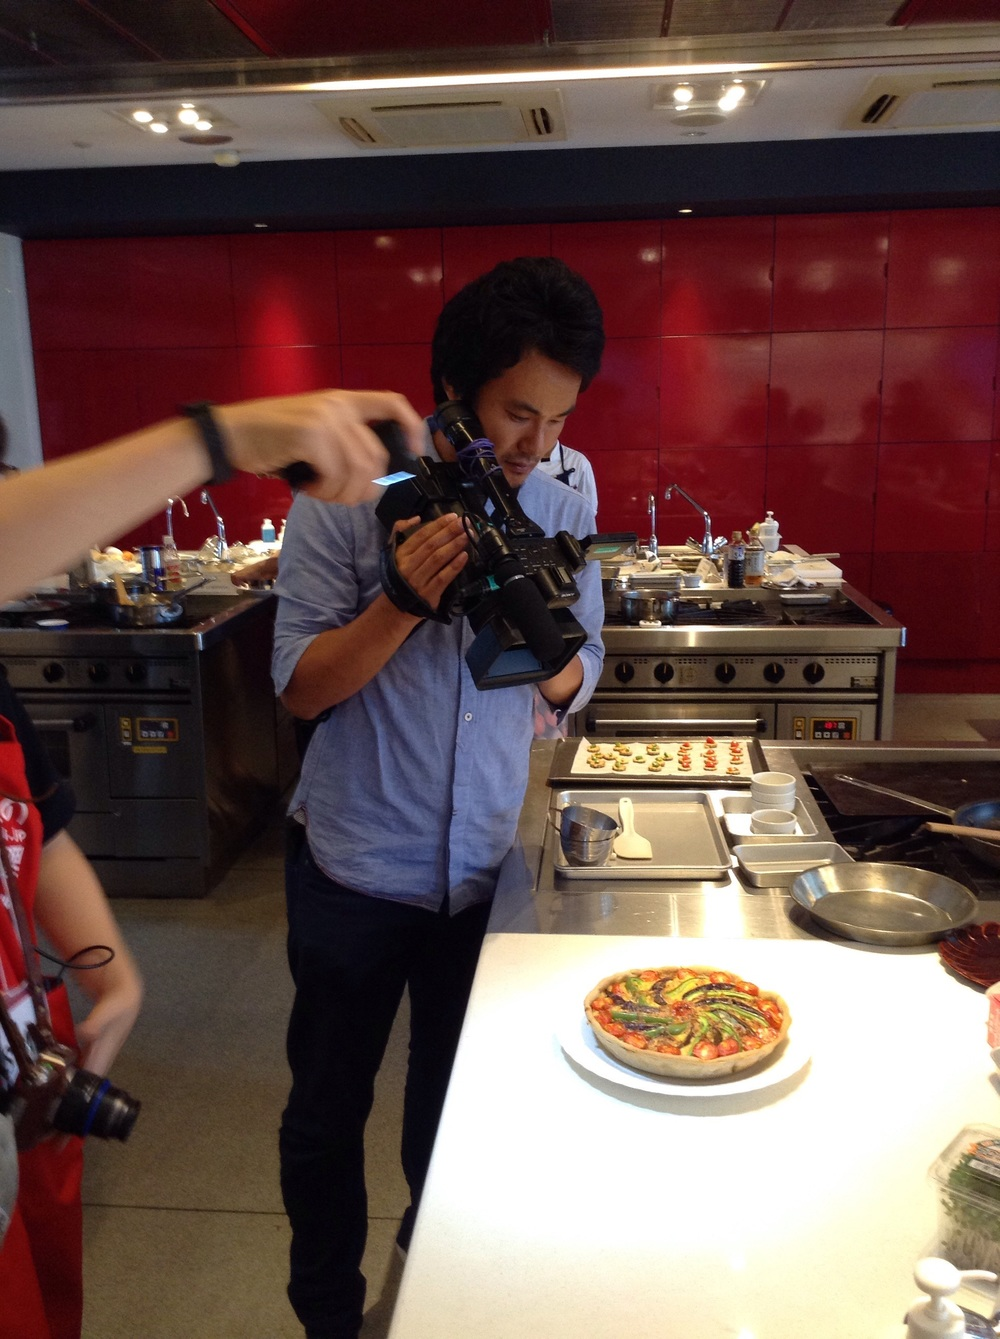 Shooting before plating